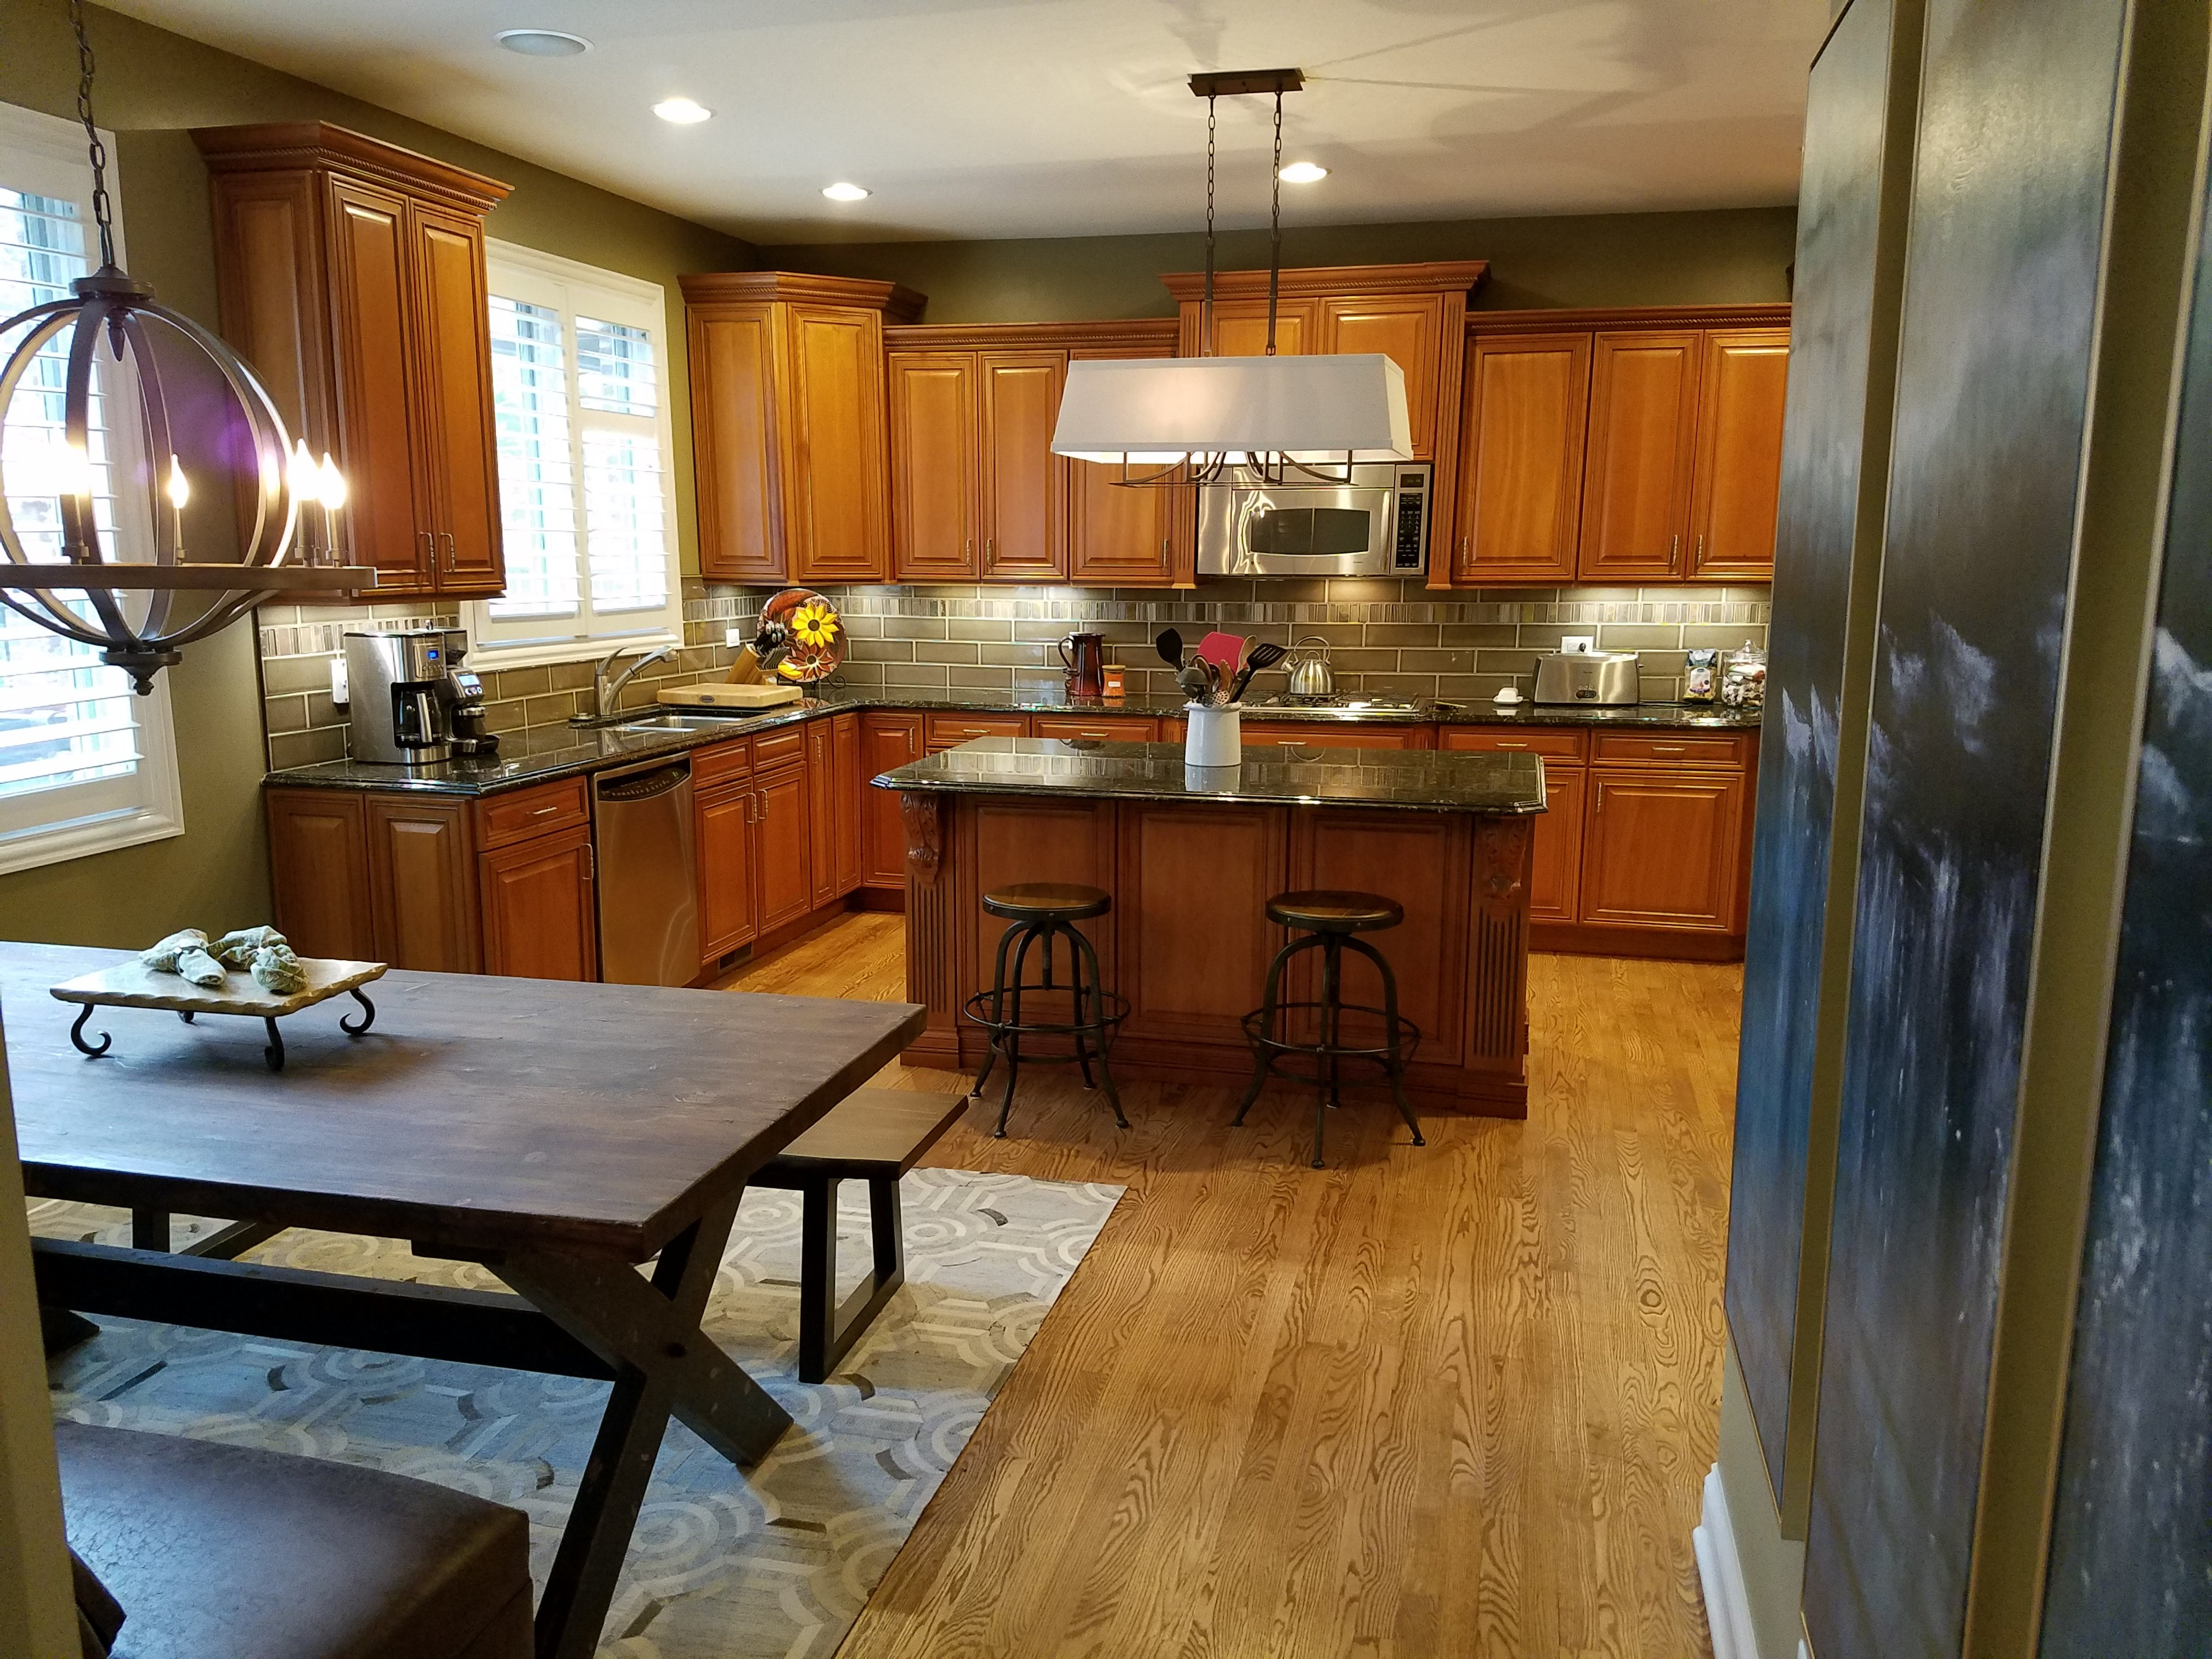 Kitchen Remodeling and Design, cherry kitchen cabinets, u-shape kitchen with an island, large pendant above the kitchen island, oak kitchen flooring